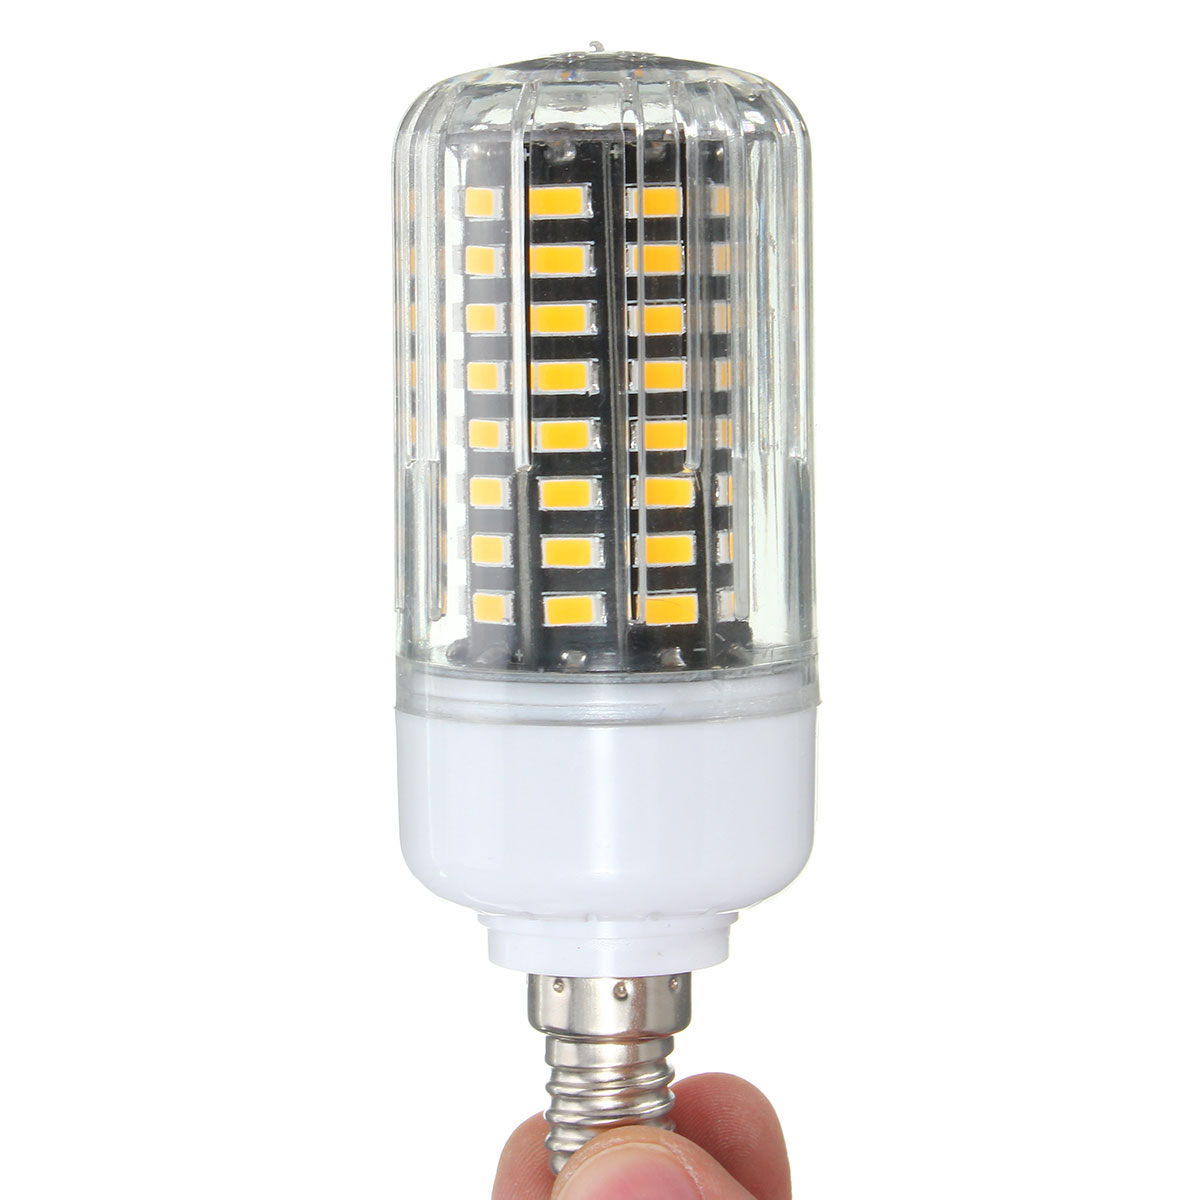 e17 e14 e12 9w 100 smd 5736 led pure white warm white natural white 900lm corn light bulb ac85. Black Bedroom Furniture Sets. Home Design Ideas